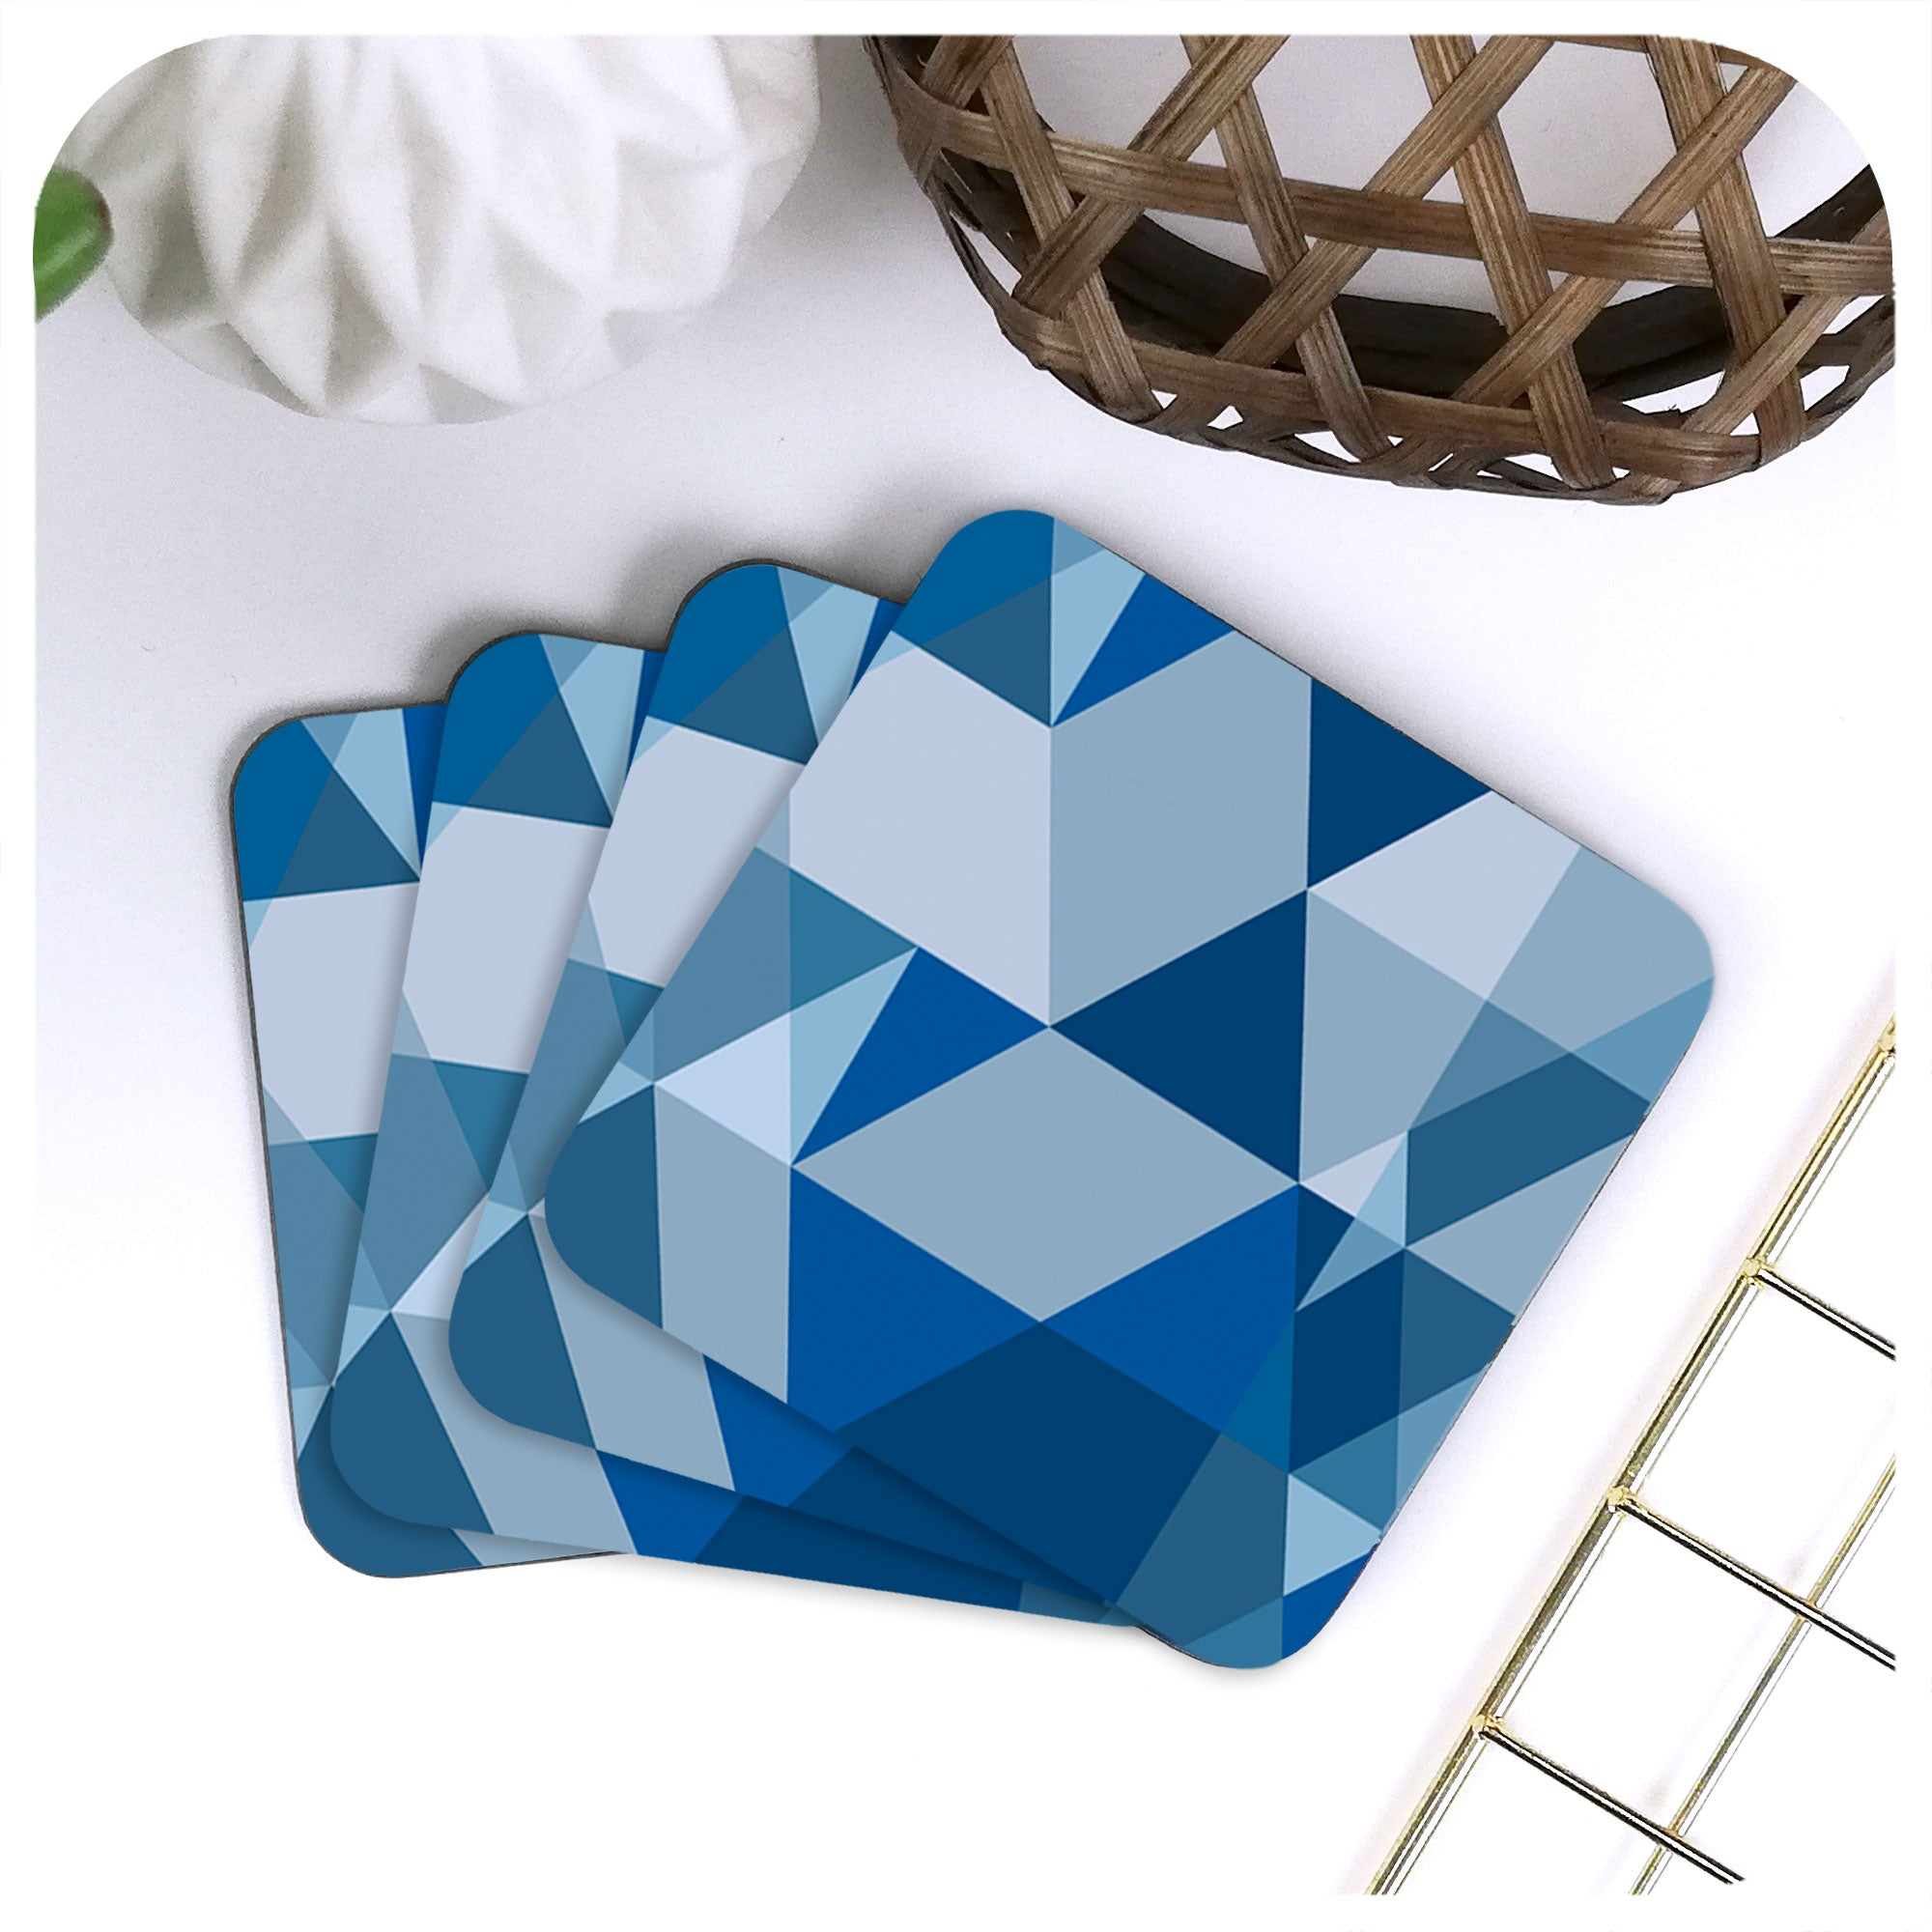 Scandi Geometric Coasters in Blue and Grey, set of four displayed in a fan | The Inkabilly Emporium